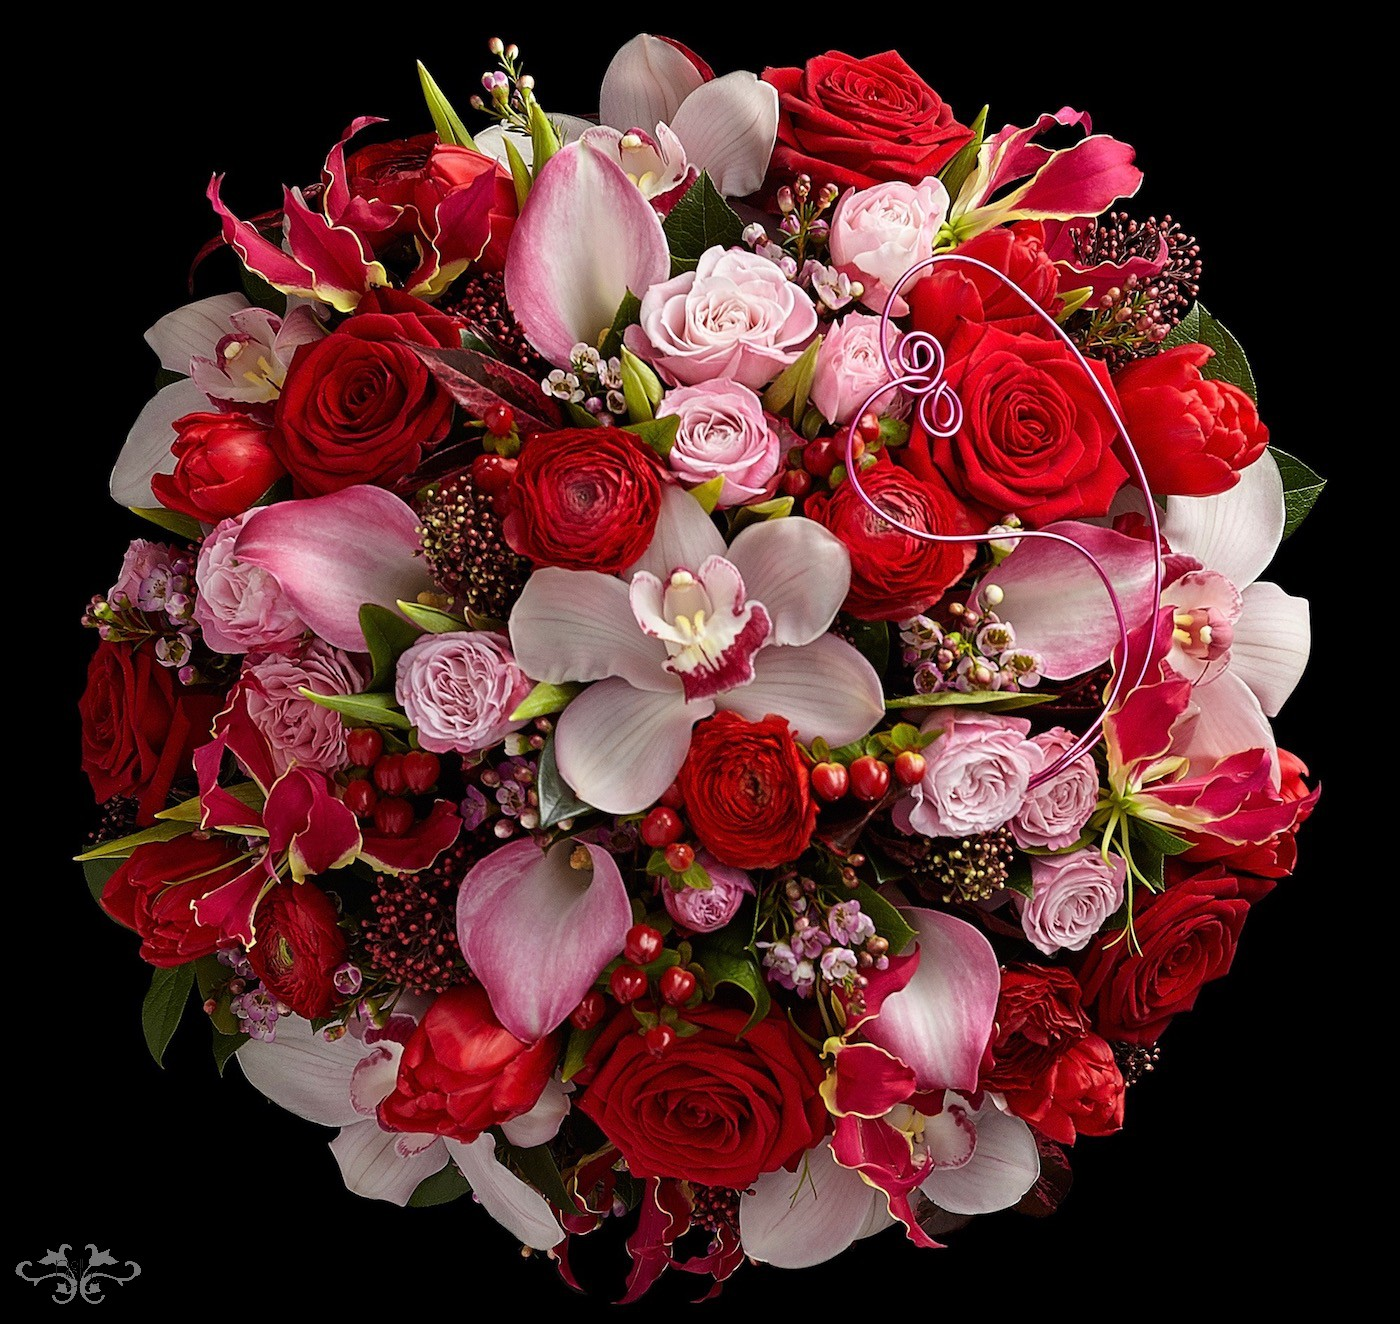 """A stunning tapestry of red Roses, Gloriosa and Calla Lilies mixed with spring flowers is """"Ruby Romance"""" for Valentine's Day"""